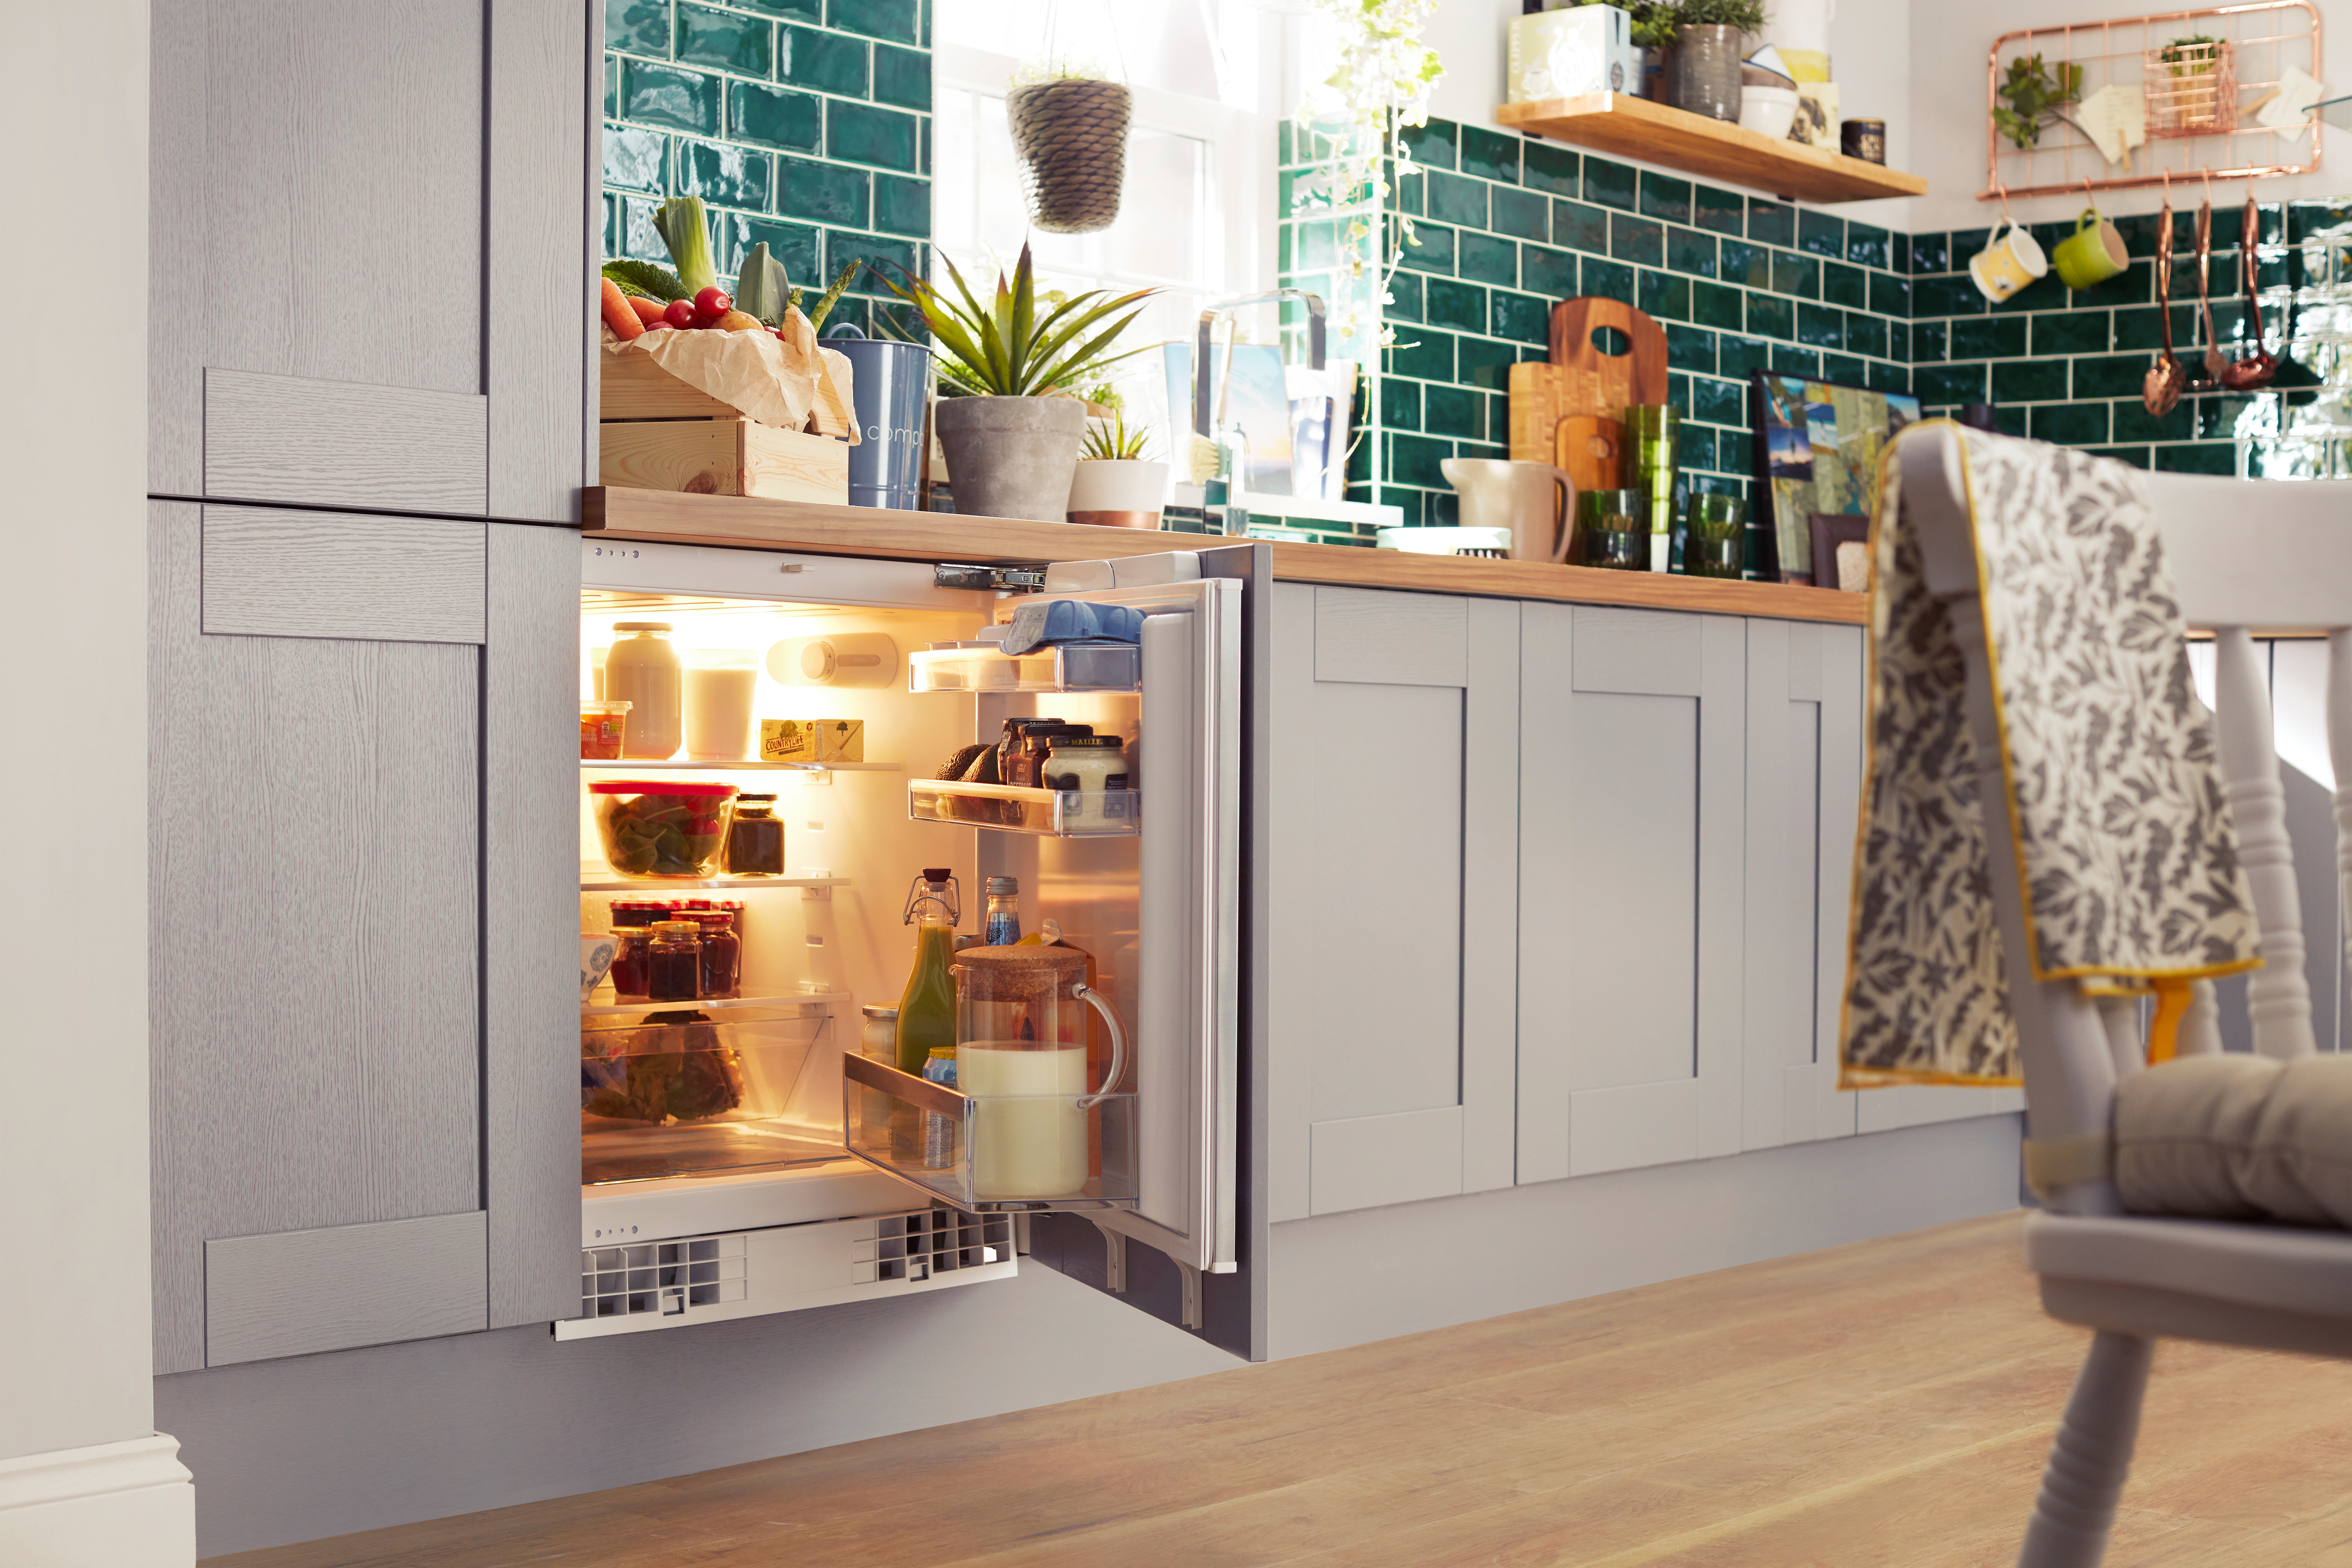 Theyu0027re Built In To Your Units And Cunningly Disguised By Cupboard Doors,  Giving Your Kitchen A Modern, ...